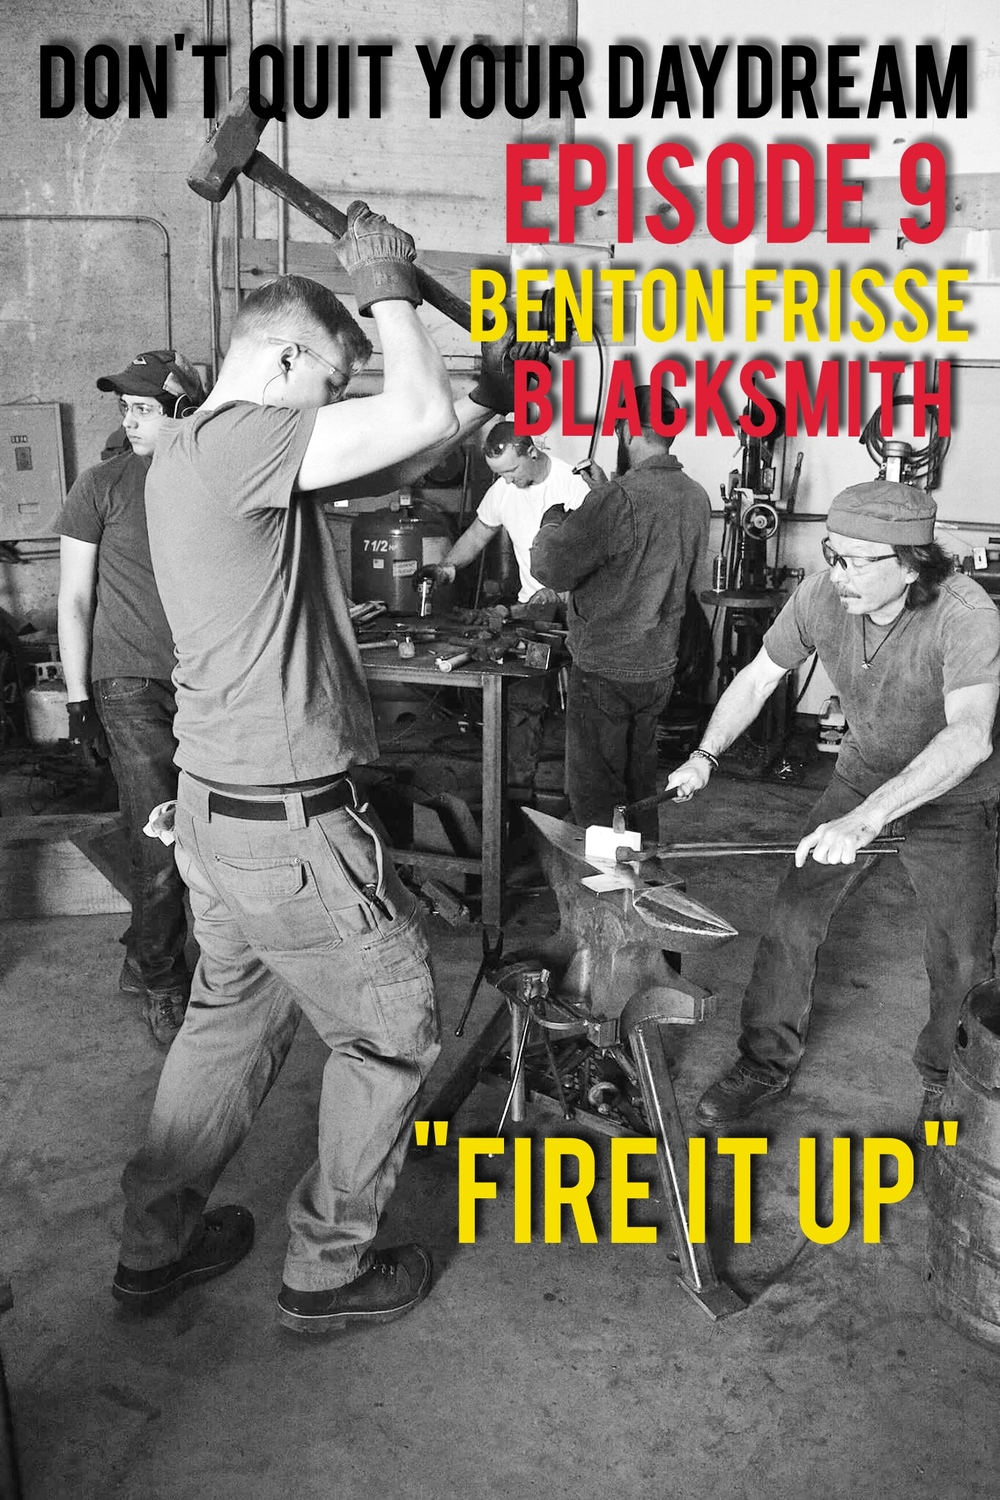 "Episode 9 features a conversation with the wonderful Benton Frisse who participates in perhaps the coolest hobby we've talked about yet, being a blacksmith. Benton discusses using ancient and modern techniques alike to create knives, arrows, axes and many other tools that not only look awesome but can be used for difficult outdoor activities. We discuss how realistic the blacksmithing is in shows like ""Game of Thrones"" and games like ""Skyrim"". Check out Benton's work and learn how to build your own arsenal! http://hallironworks.blogspot.com/ Oh and random side note, we must have upset the podcast gods because there's an echo during the intro however the rest of the actual interview sounds fine!"